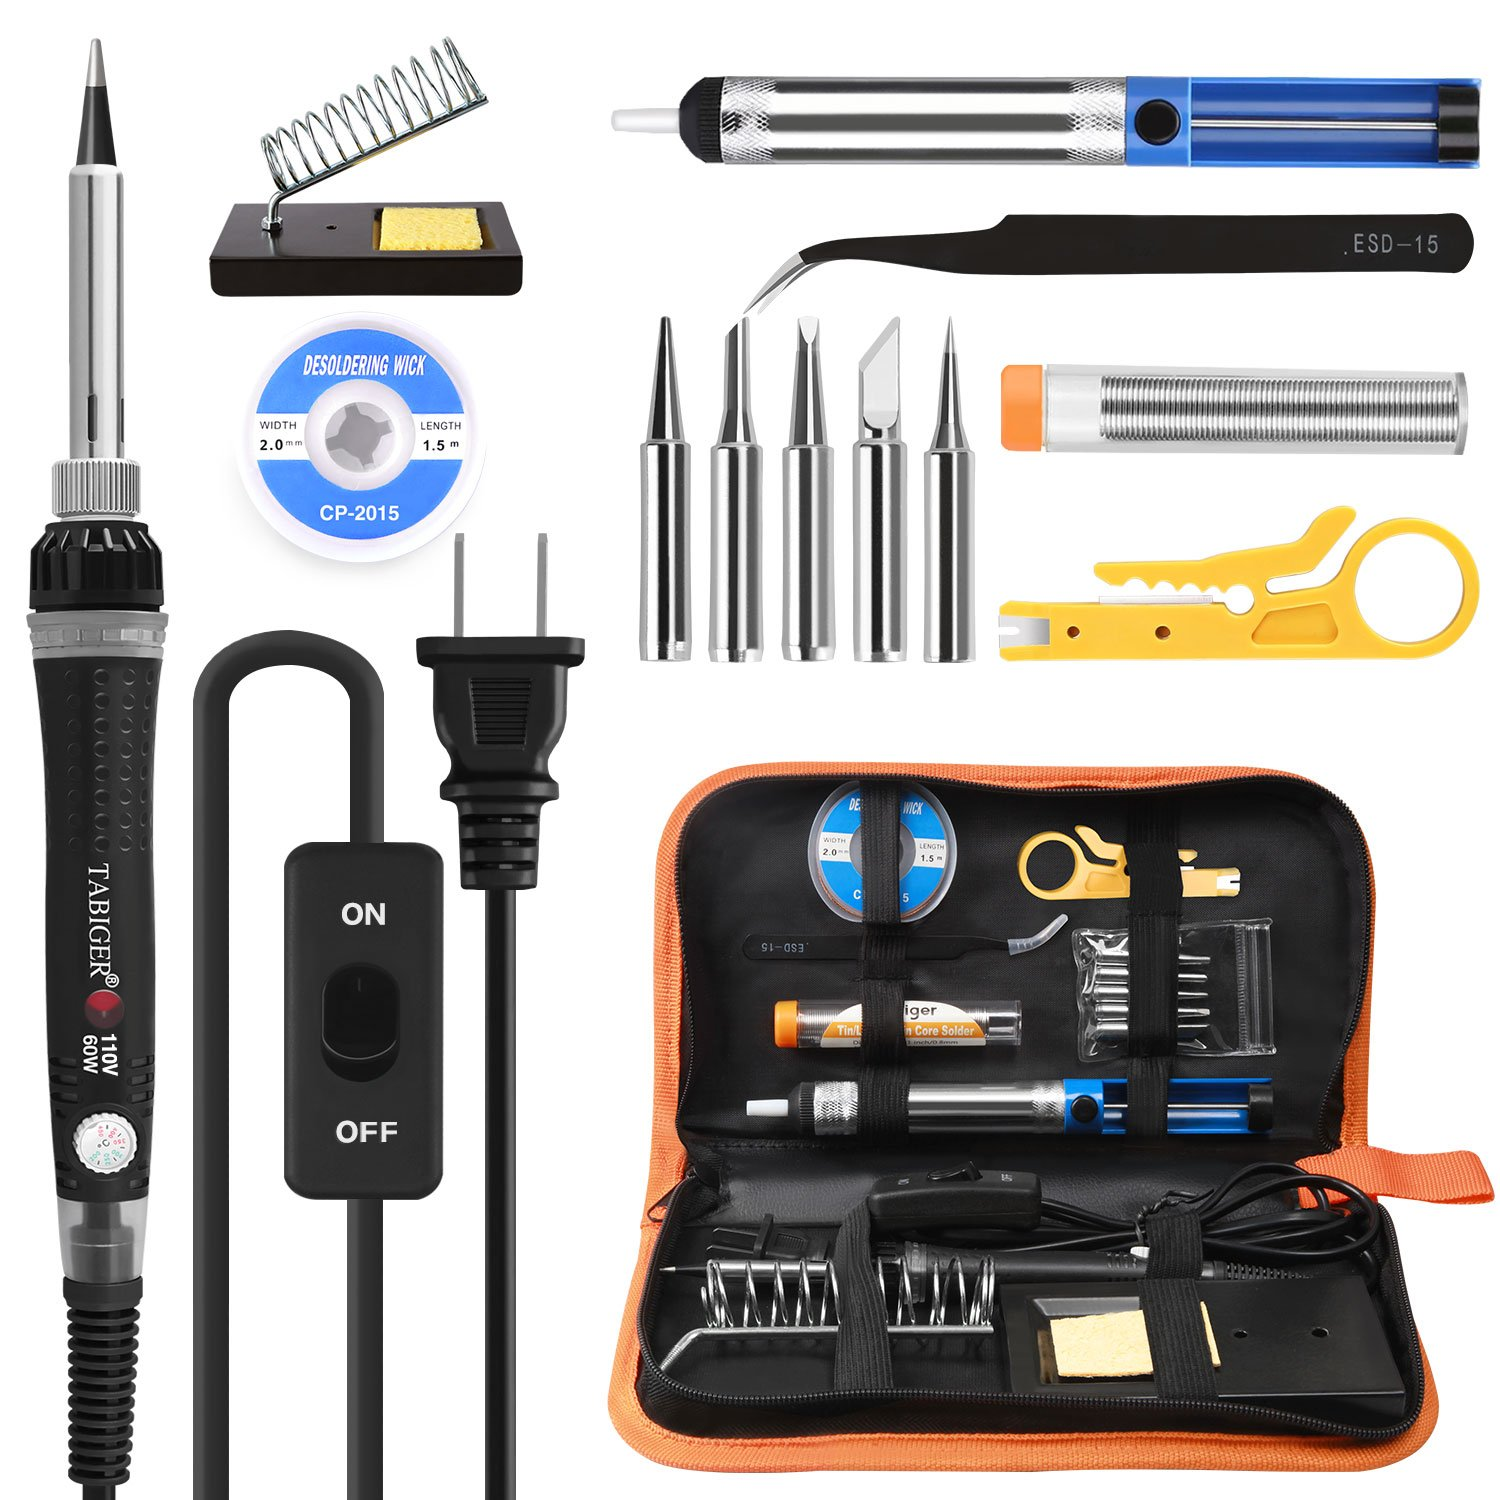 Tabiger Soldering Iron kit with Adjustable Temp 200-450°C and ON/OFF Switch, 60W Welding tool with 5 Soldering tips, Desoldering Pump, Solder Wick, Solder wire, Wire Stripper Cutter, Stand, Tool Case